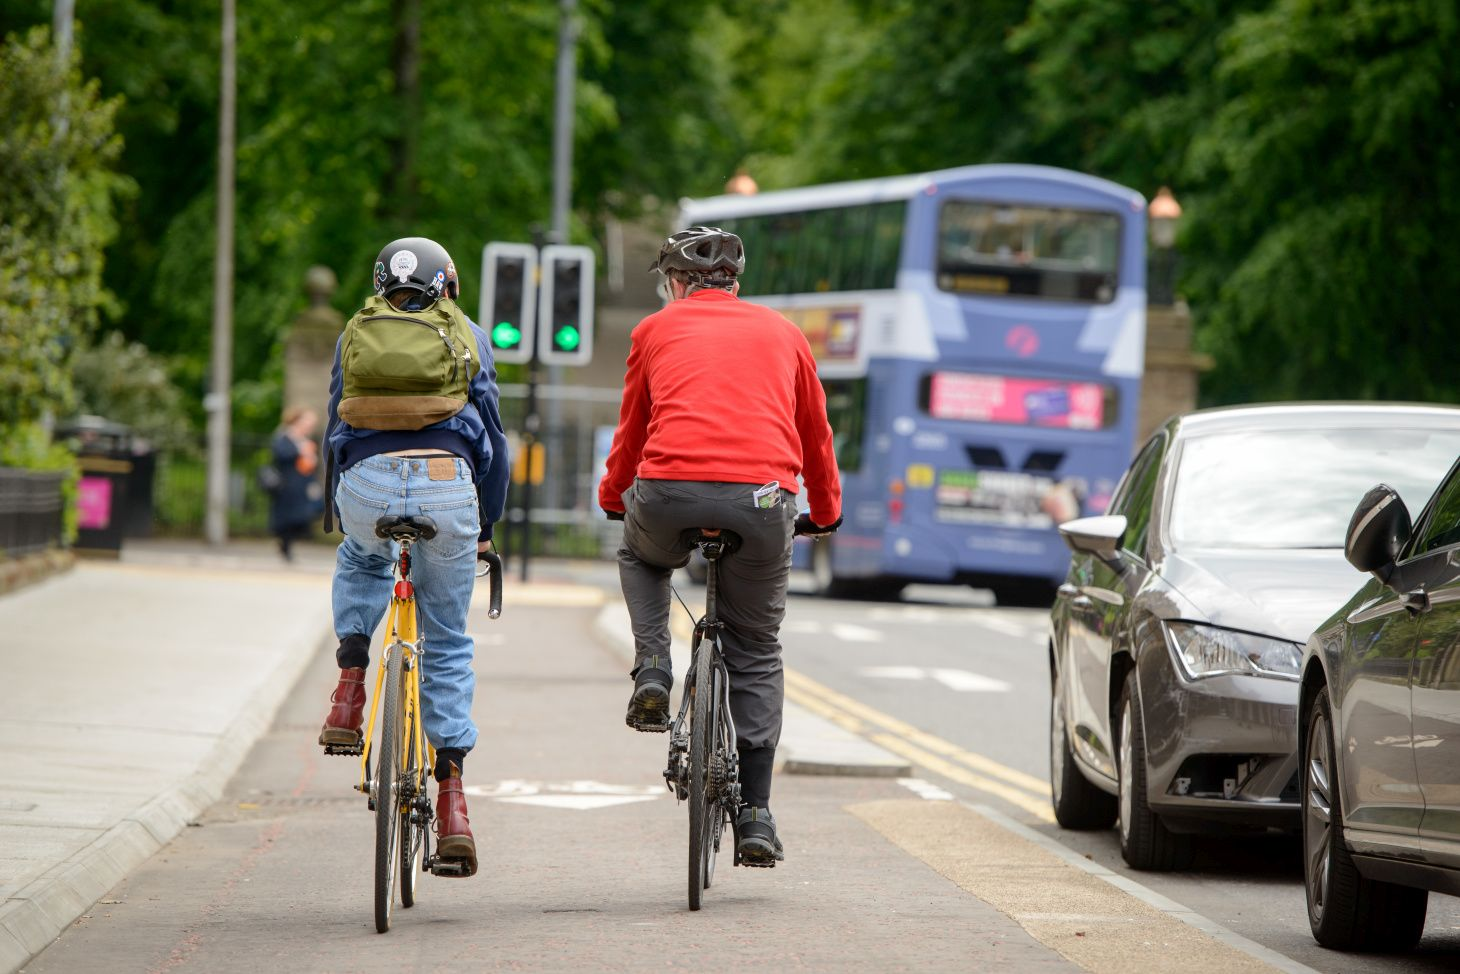 2 cyclists riding in cycle lane